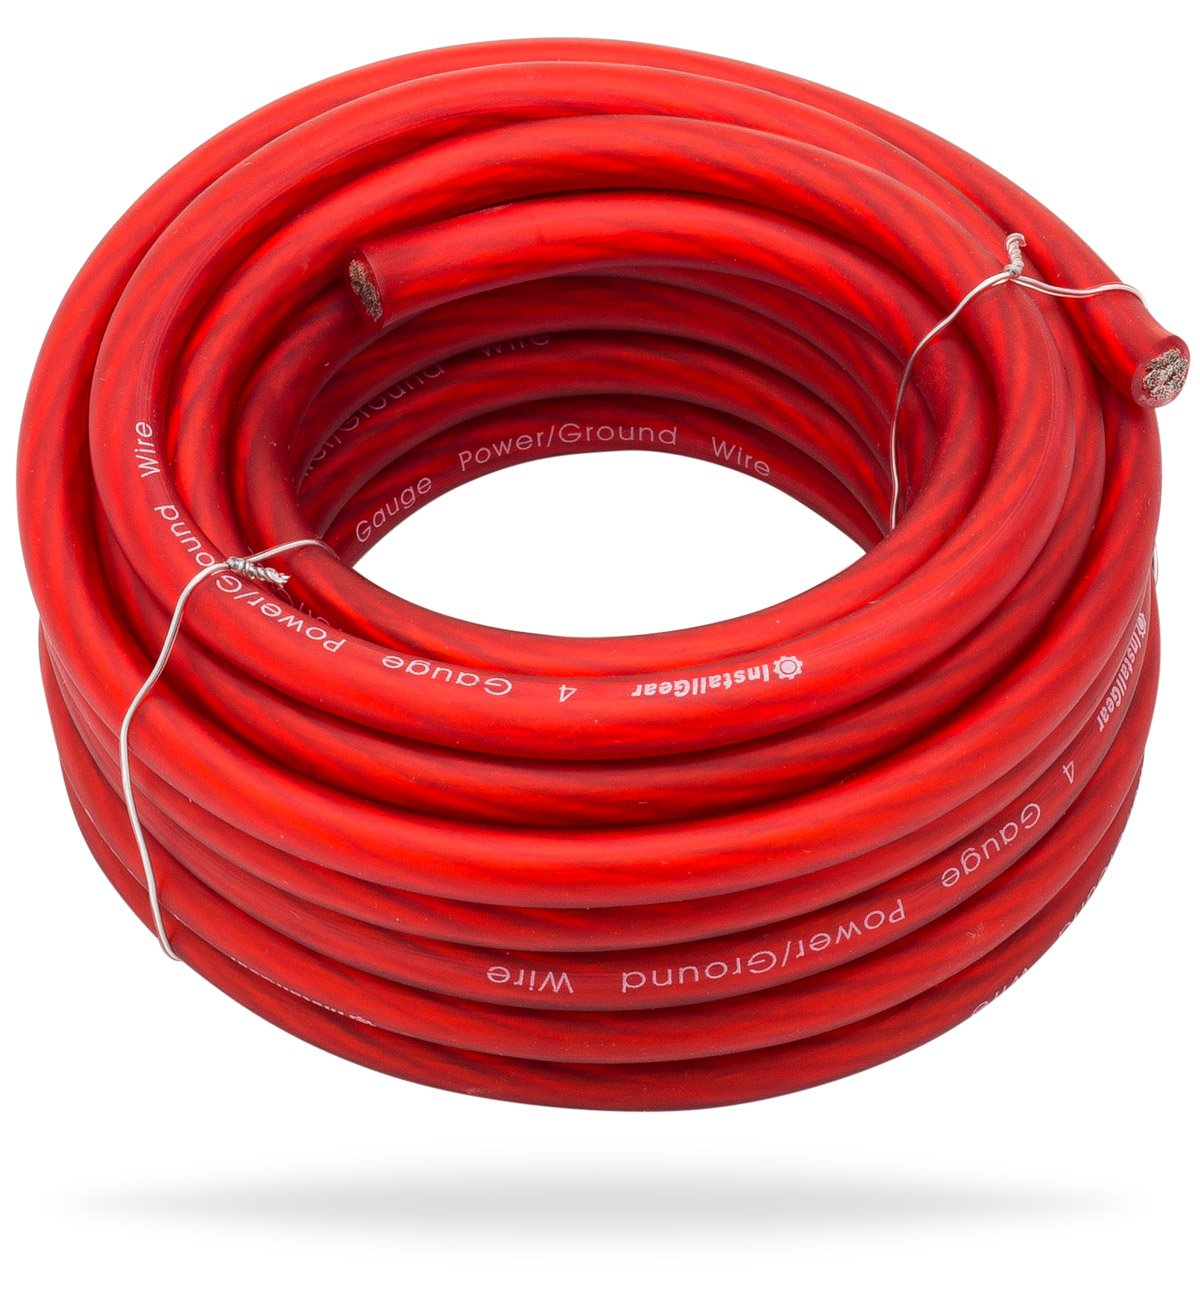 Amazon.com: InstallGear 4 Gauge Red 25ft Power/Ground Wire True Spec and  Soft Touch Cable: Car Electronics